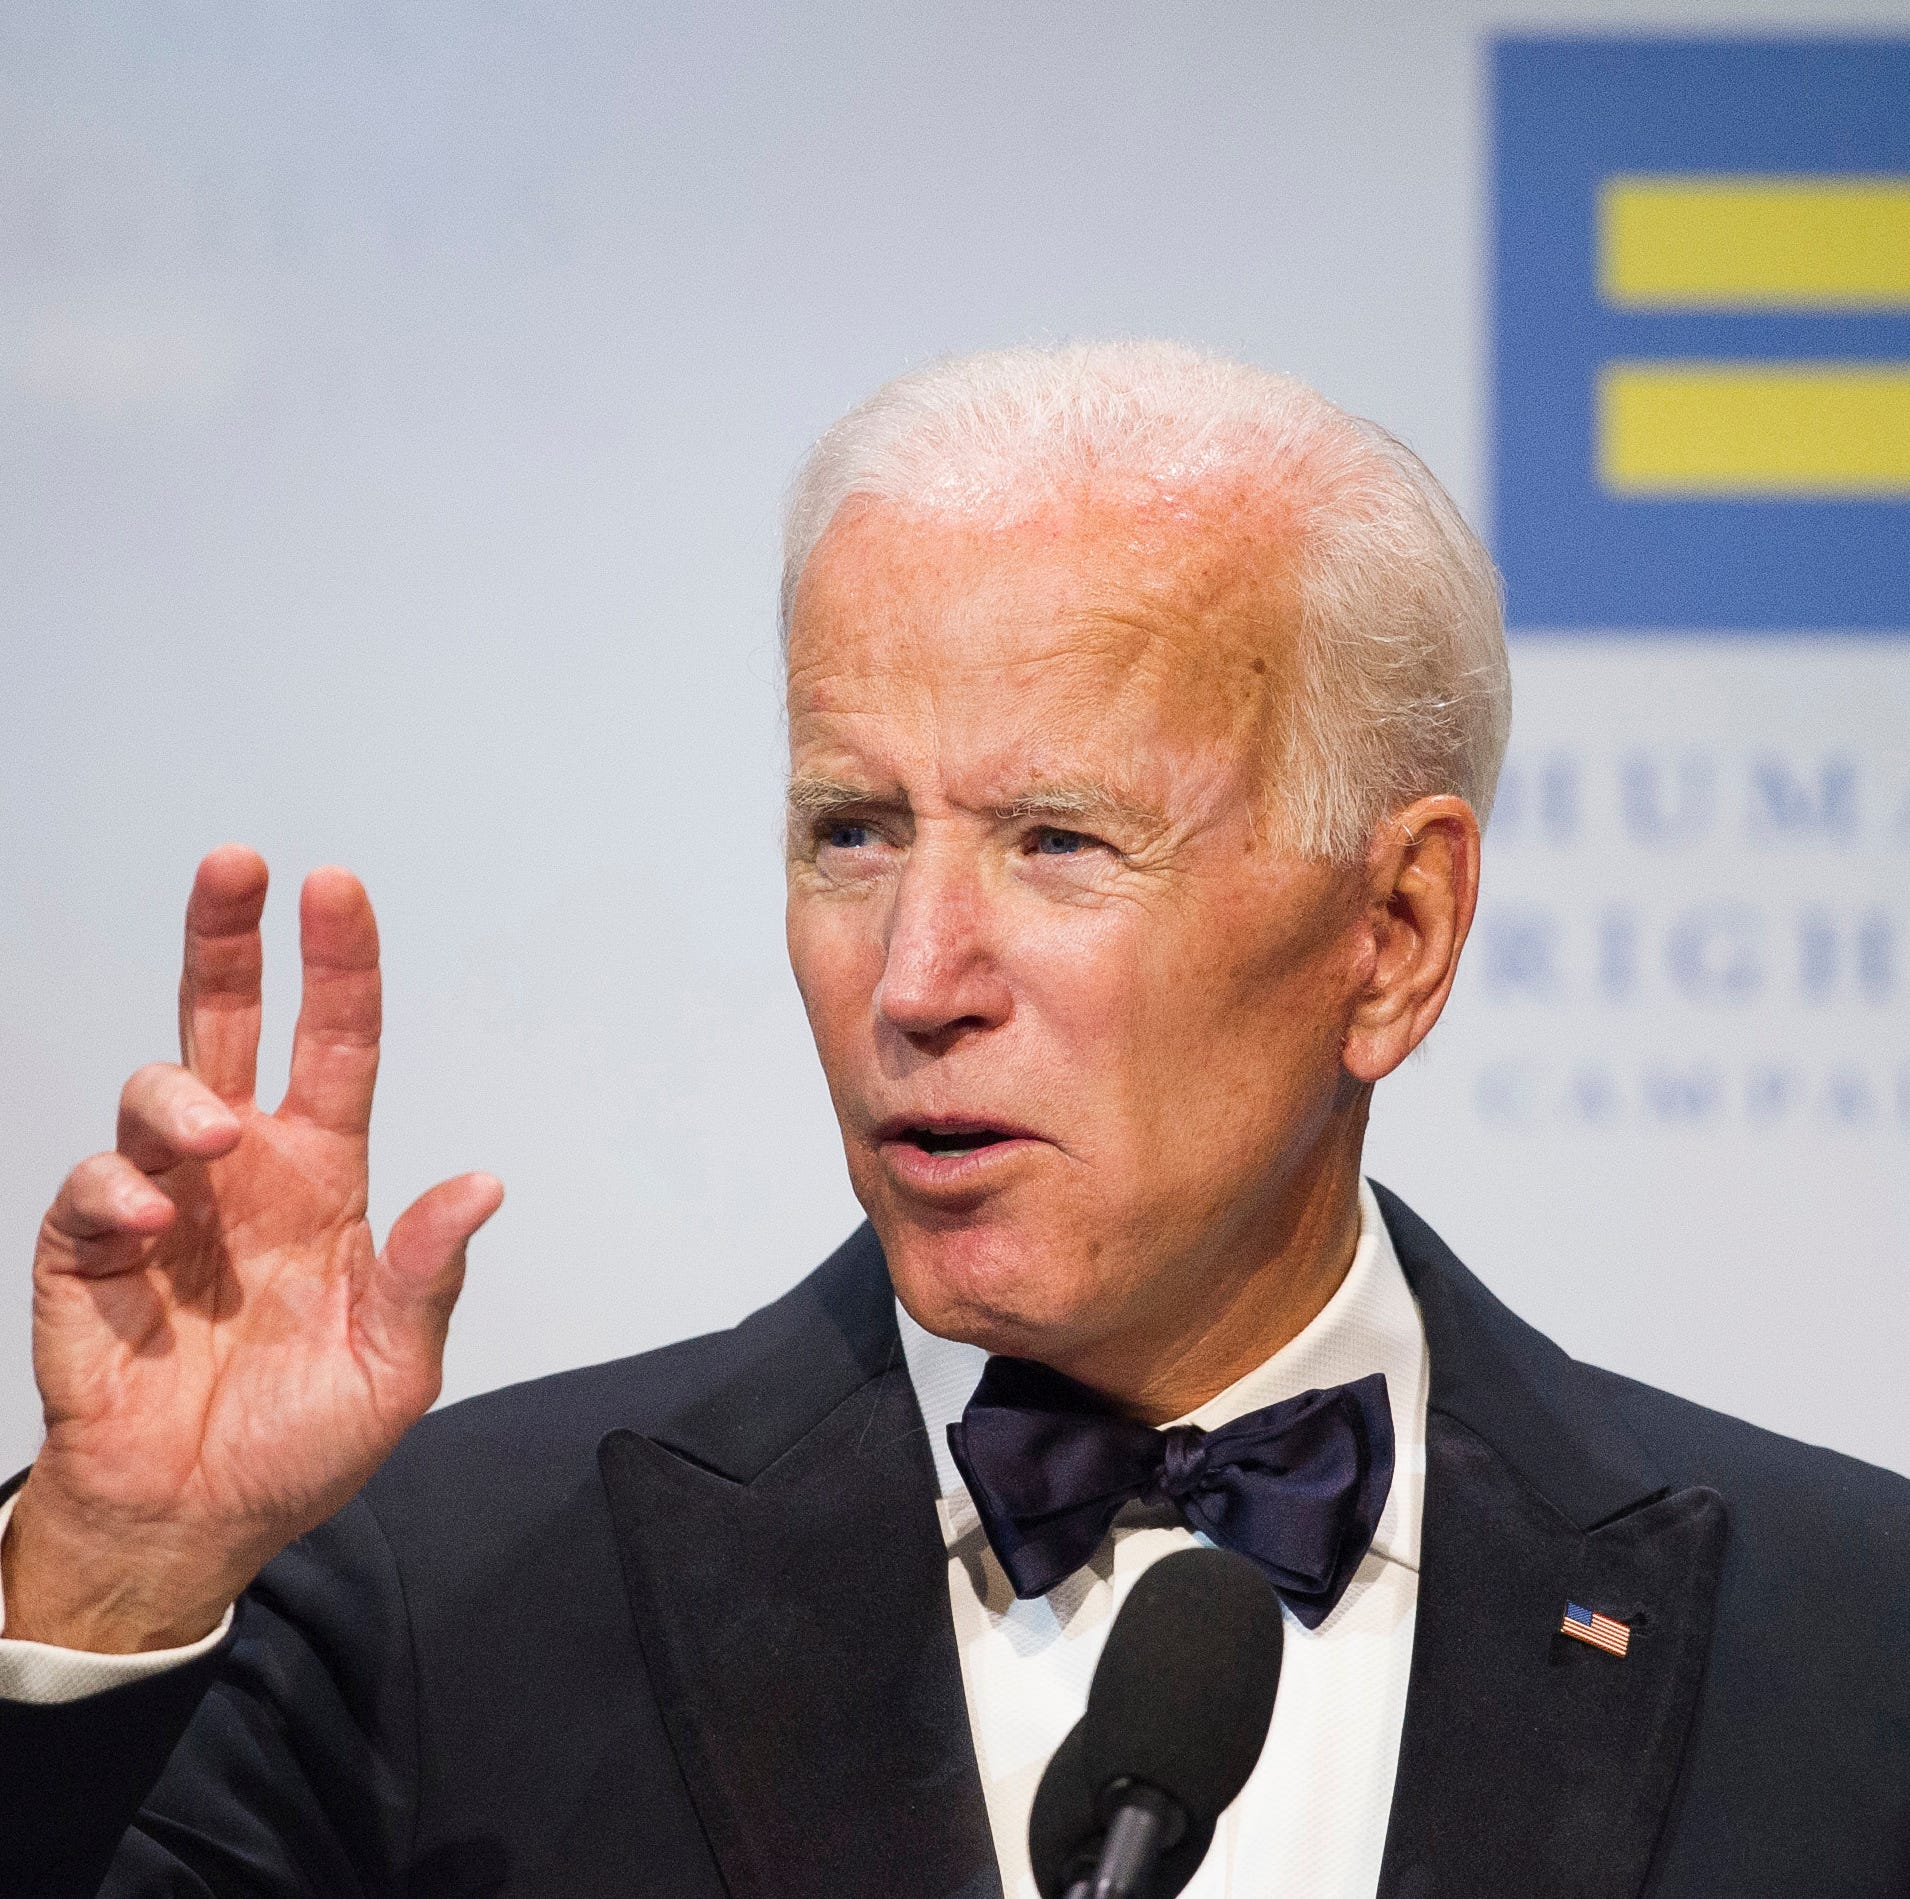 Republicans keep invoking Joe Biden's words to bolster Supreme Court strategy. Here's why.